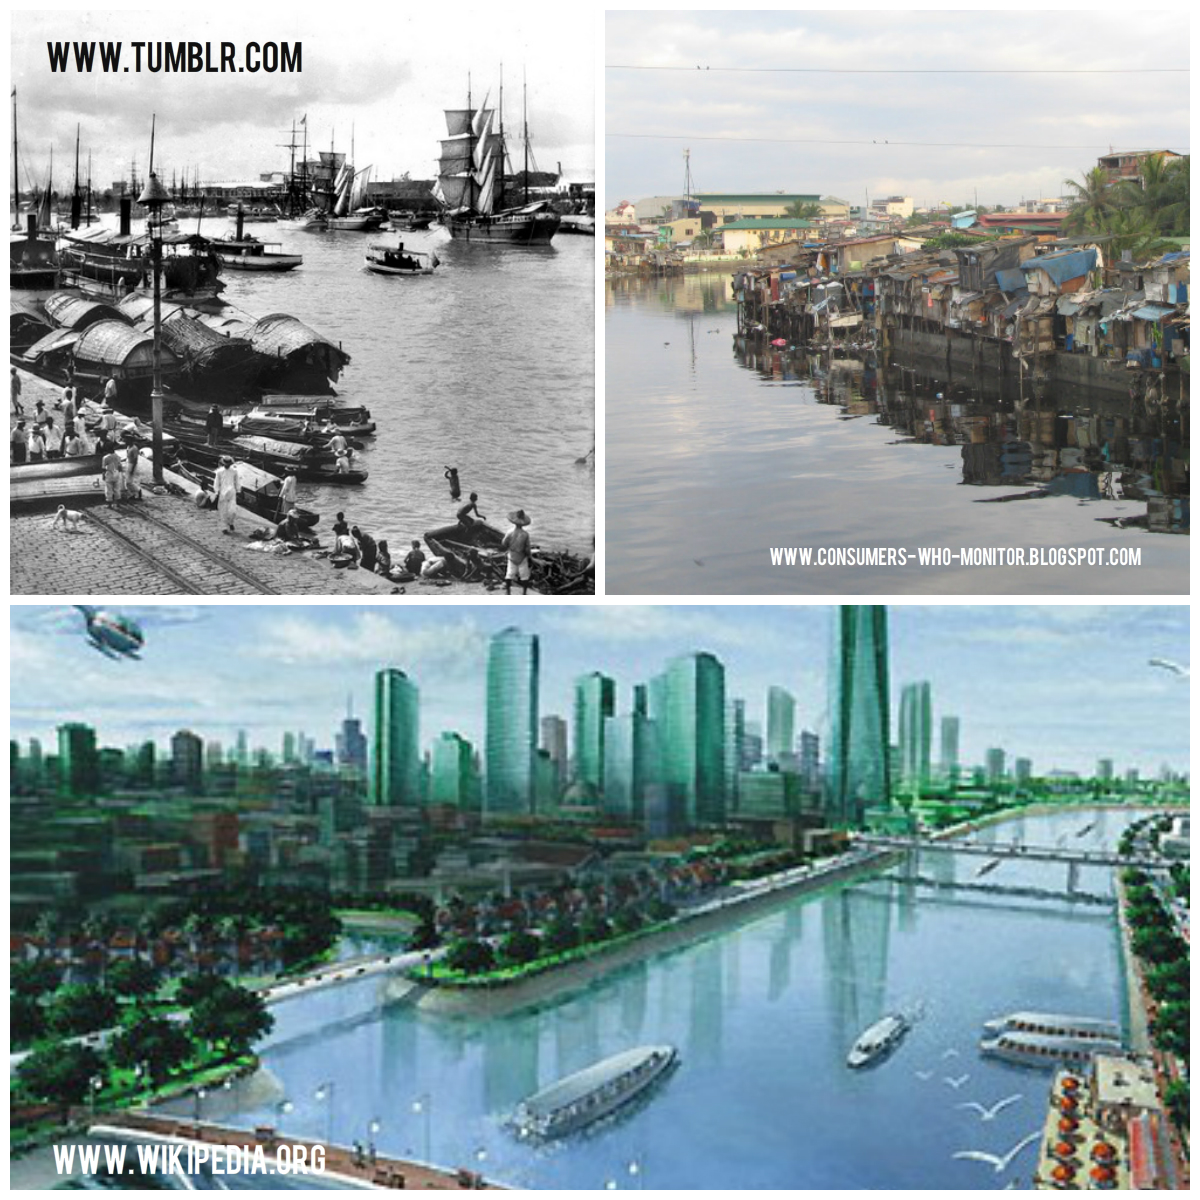 amsterdam past present and future city The iwa developed the 17 principles to help city leaders ensure that everyone in  their cities  sydney, shenzhen, xi'an, dakar, amsterdam and brisbane are  becoming the first cities  desalination – past, present and future.